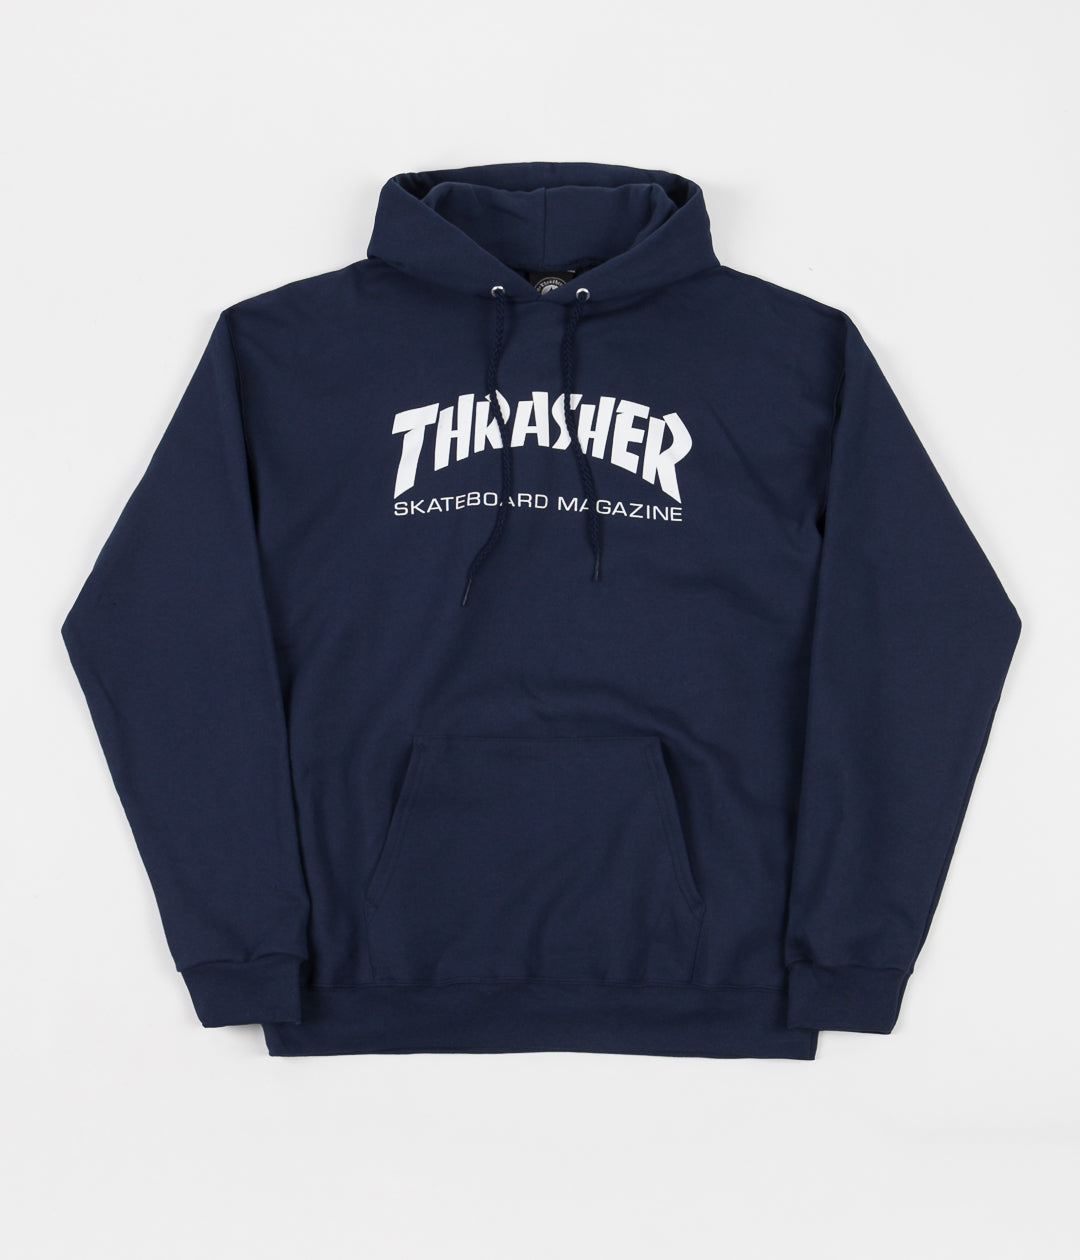 Thrasher Skate Mag Logo Hooded Sweatshirt - Navy